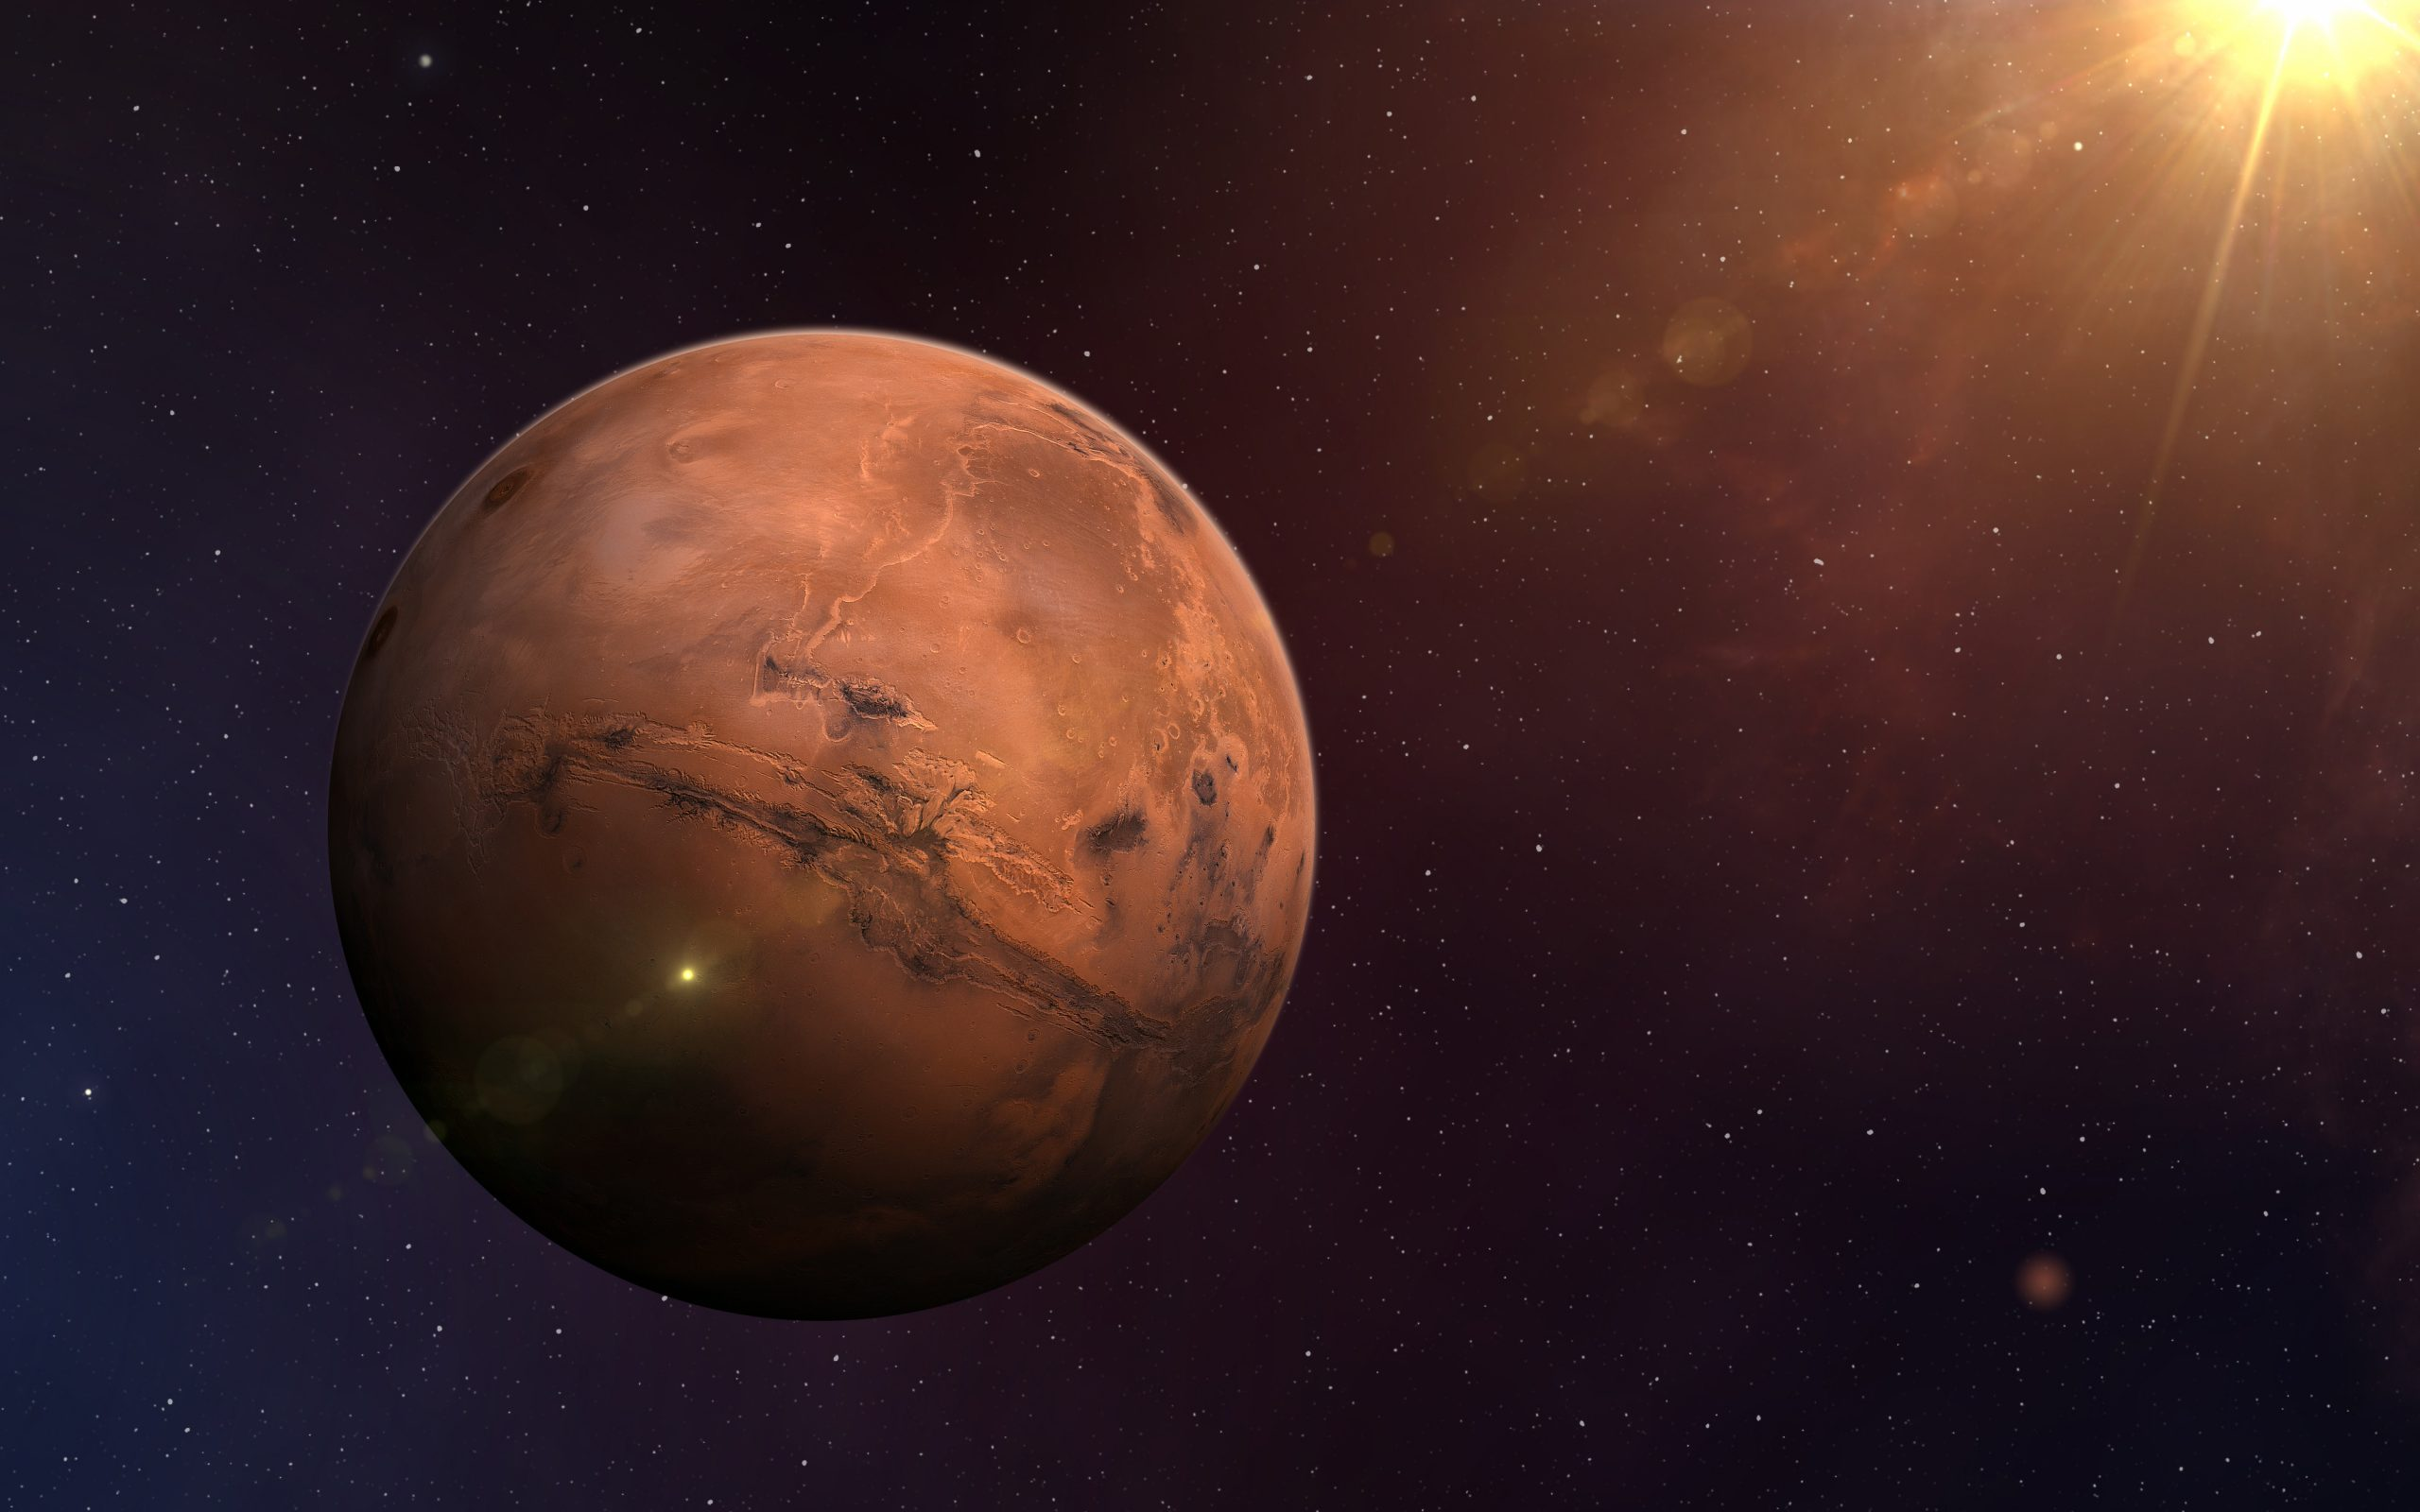 View of planet Mars from space. Space, nebula and planet Mars. This image elements furnished by NASA.